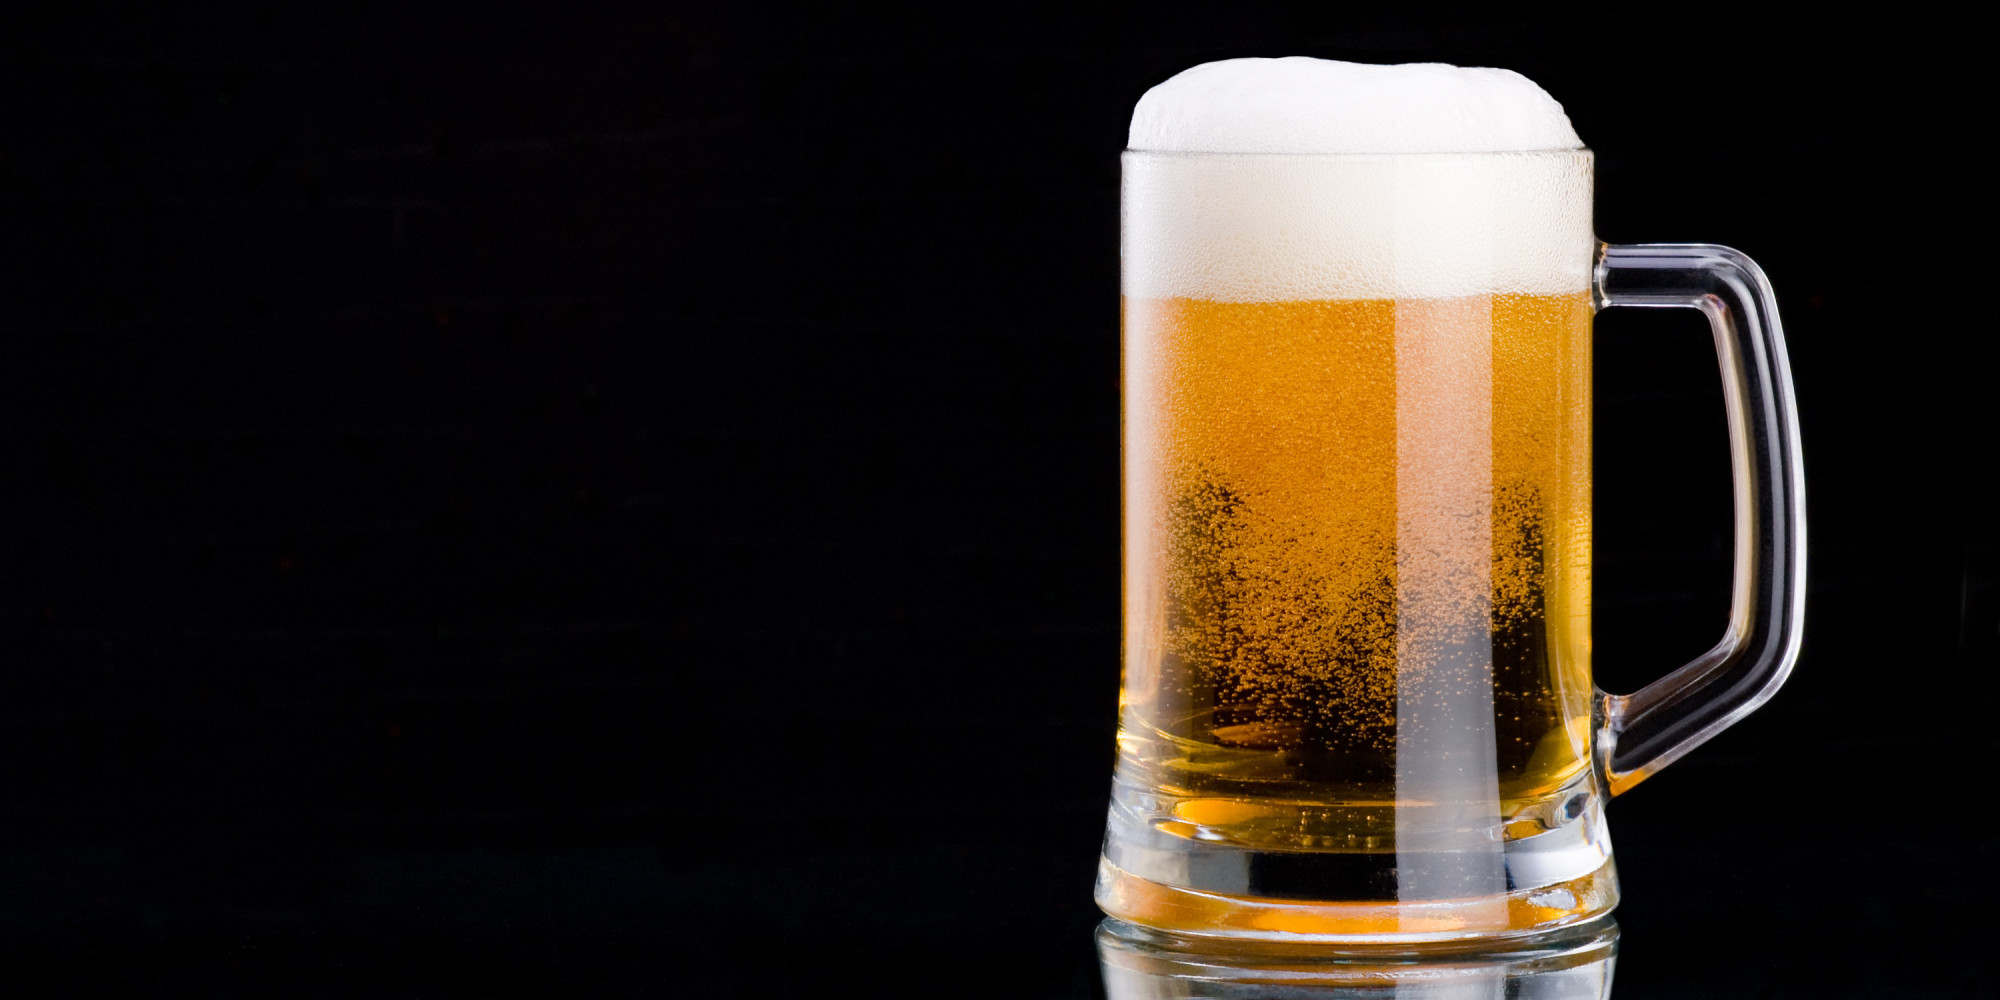 A mug of beer. Alcohol should be avoided if wanting to reverse brain damage since it is a neurotoxin.